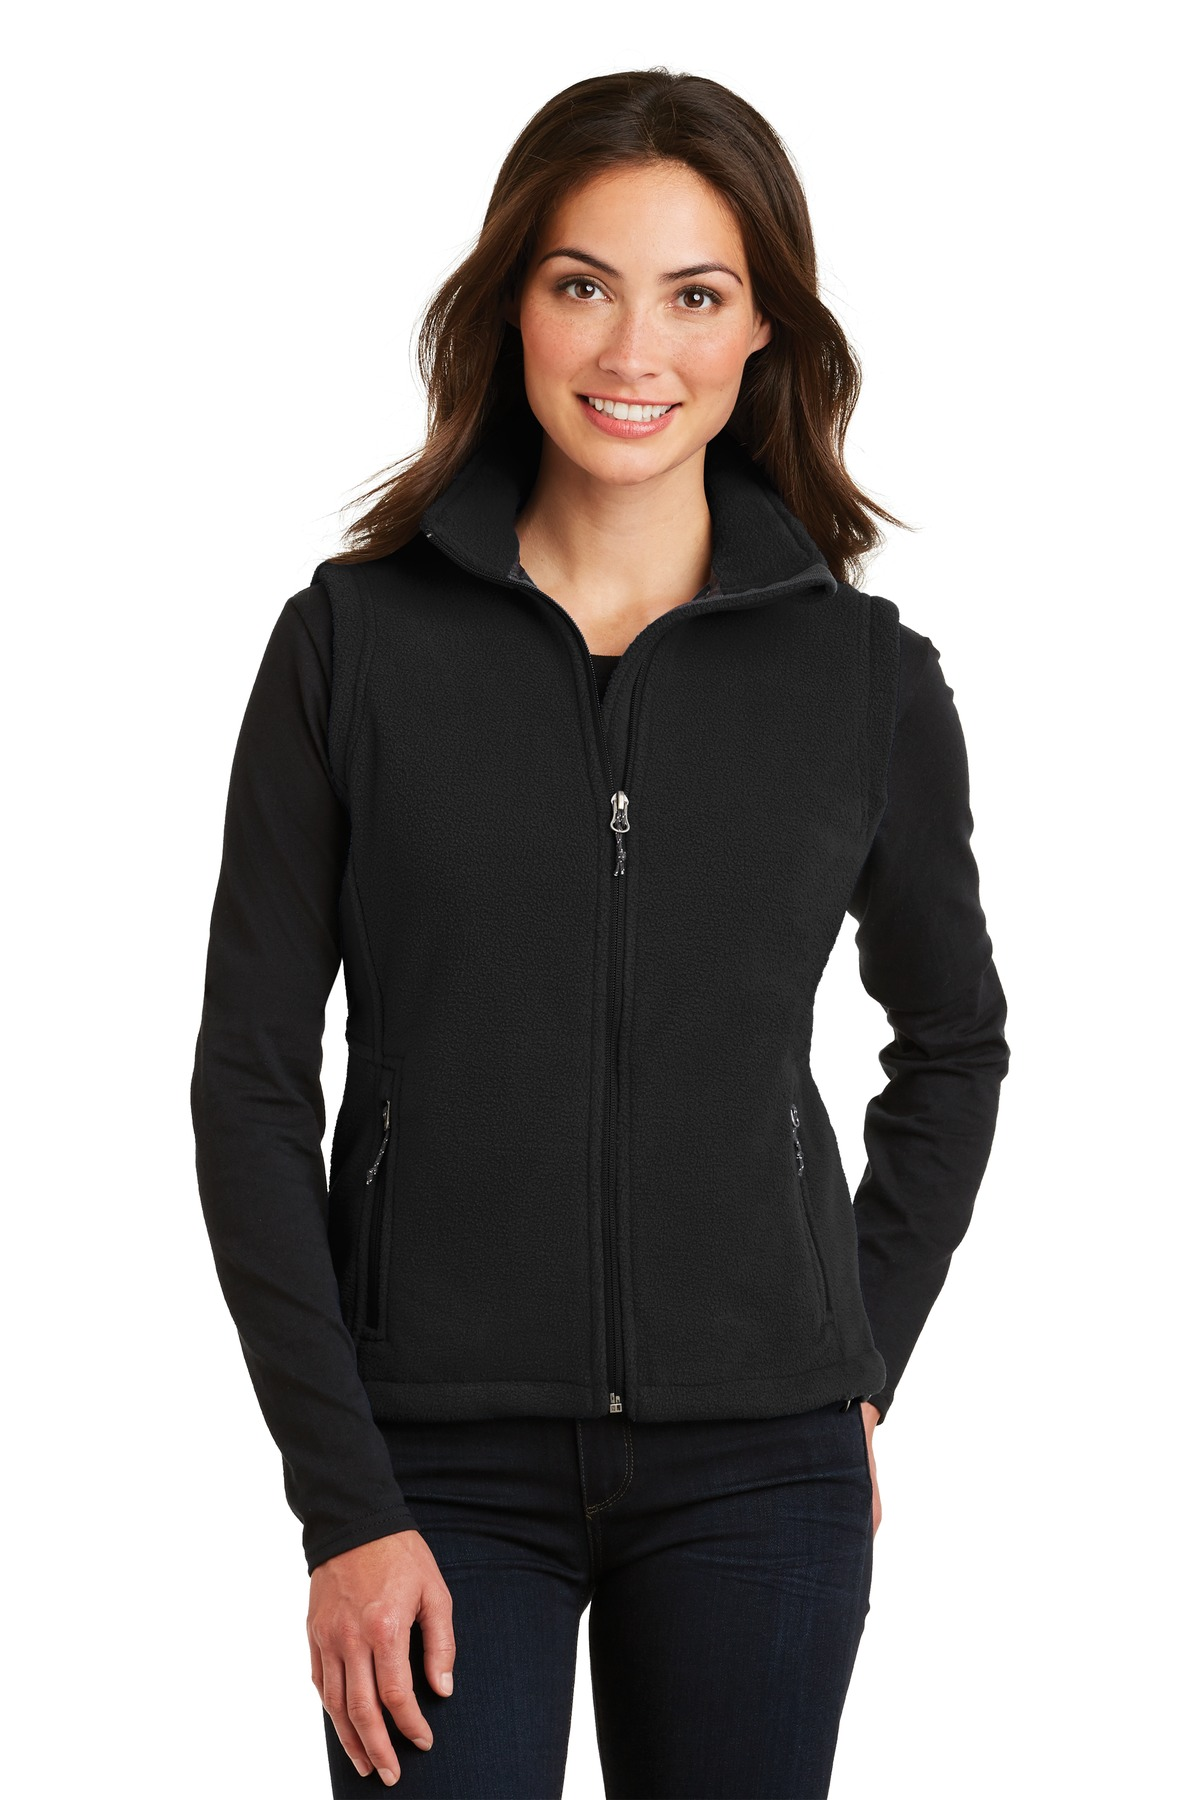 Port Authority ®  Ladies Value Fleece Vest. L219 - Black